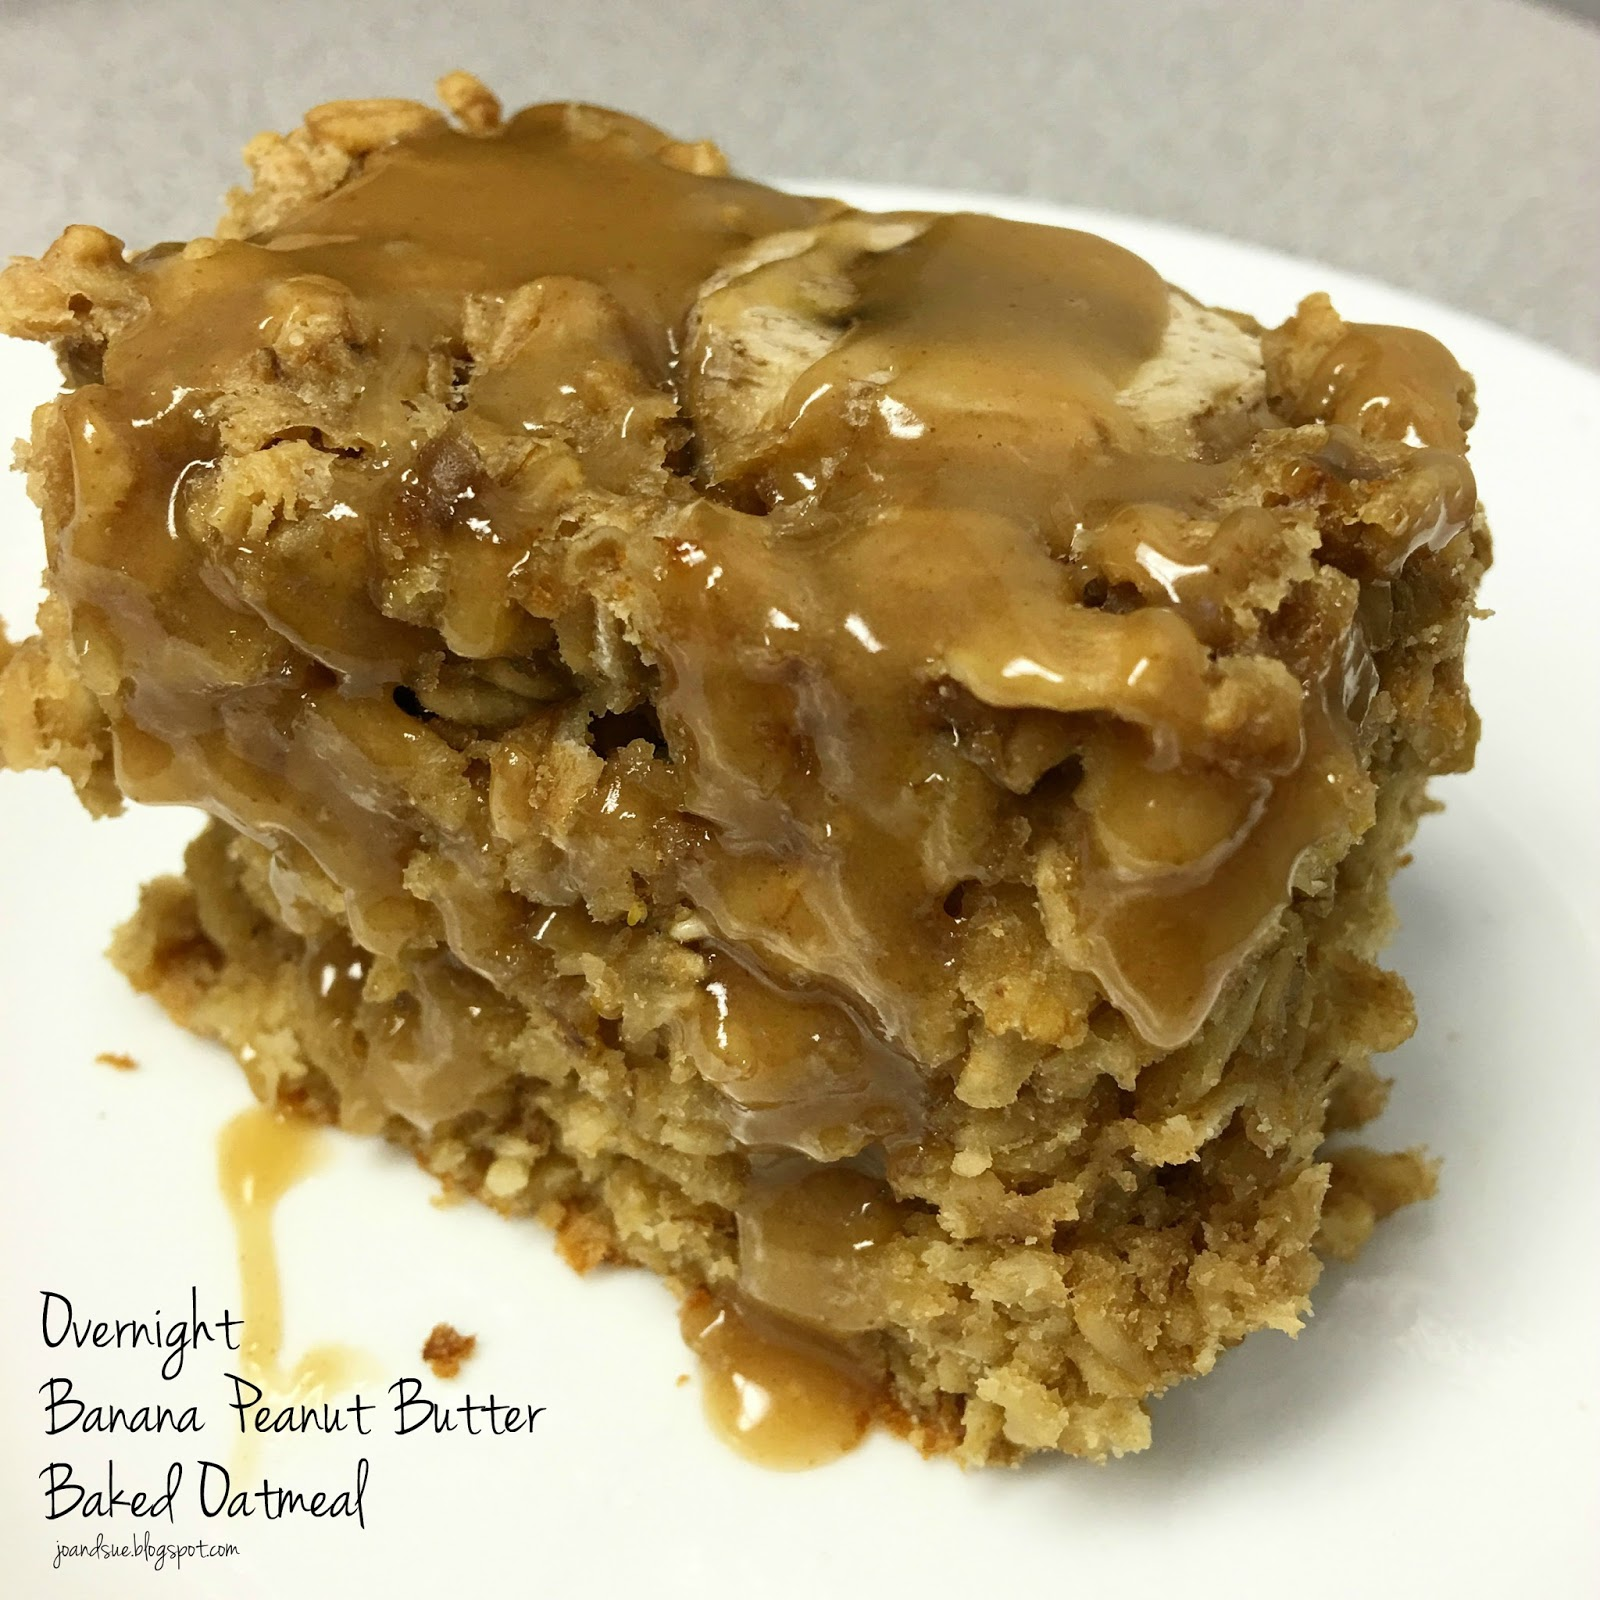 Jo and Sue: Overnight Banana Peanut Butter Baked Oatmeal